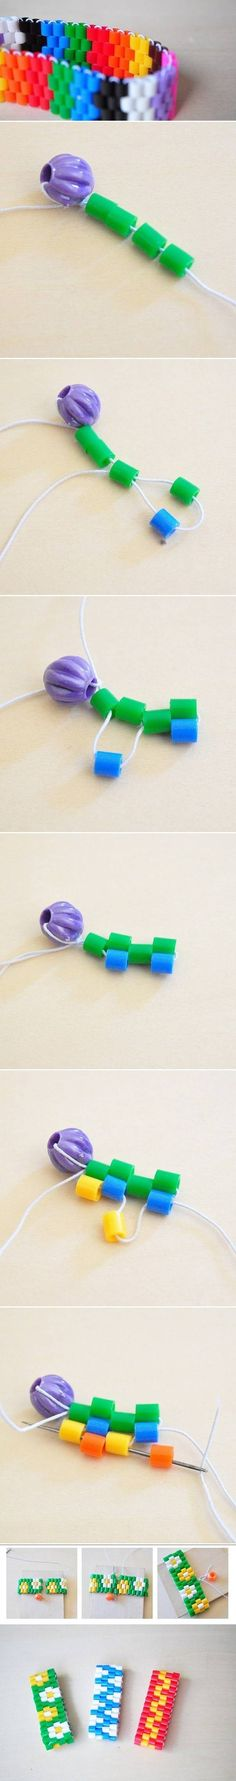 DIY Colorful Bracelet Pictures, Photos, and Images for Facebook, Tumblr, Pinterest, and Twitter